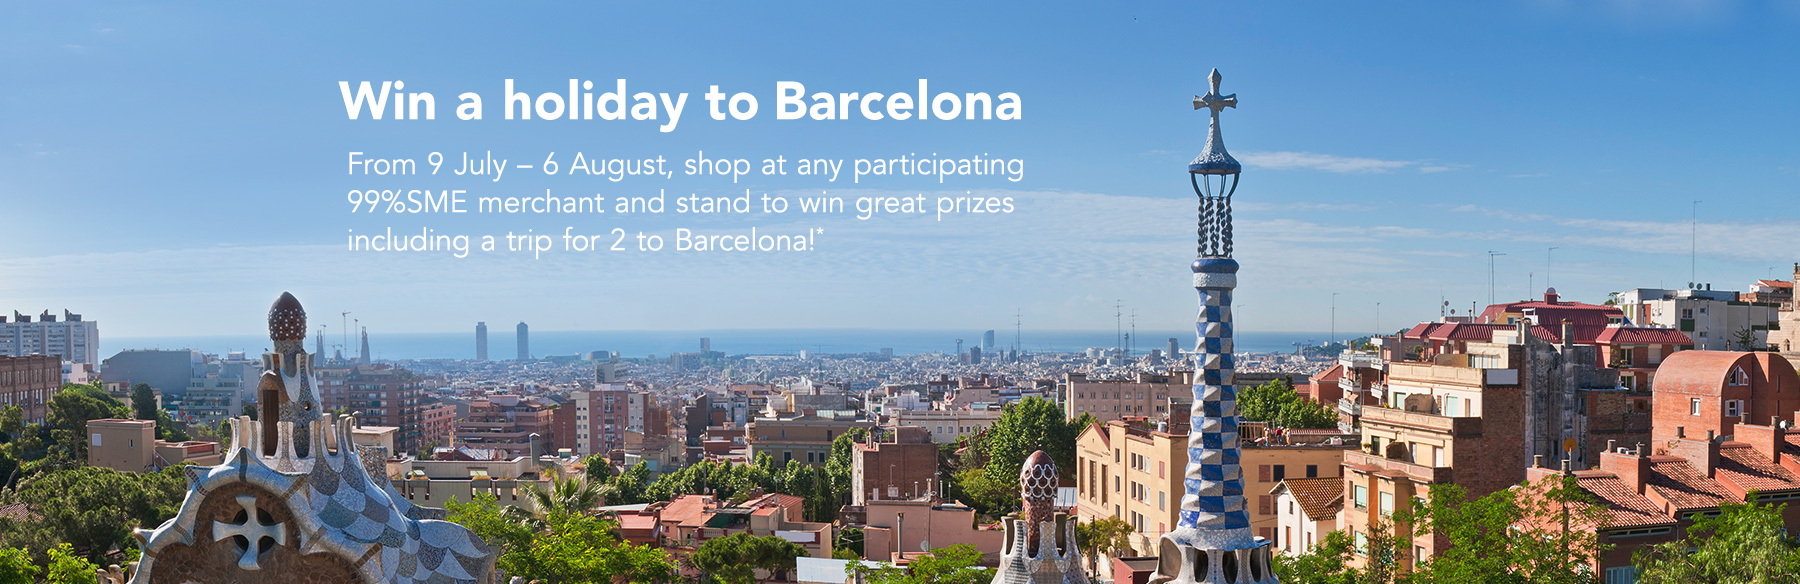 Win a holiday to Barcelona with 99%SME